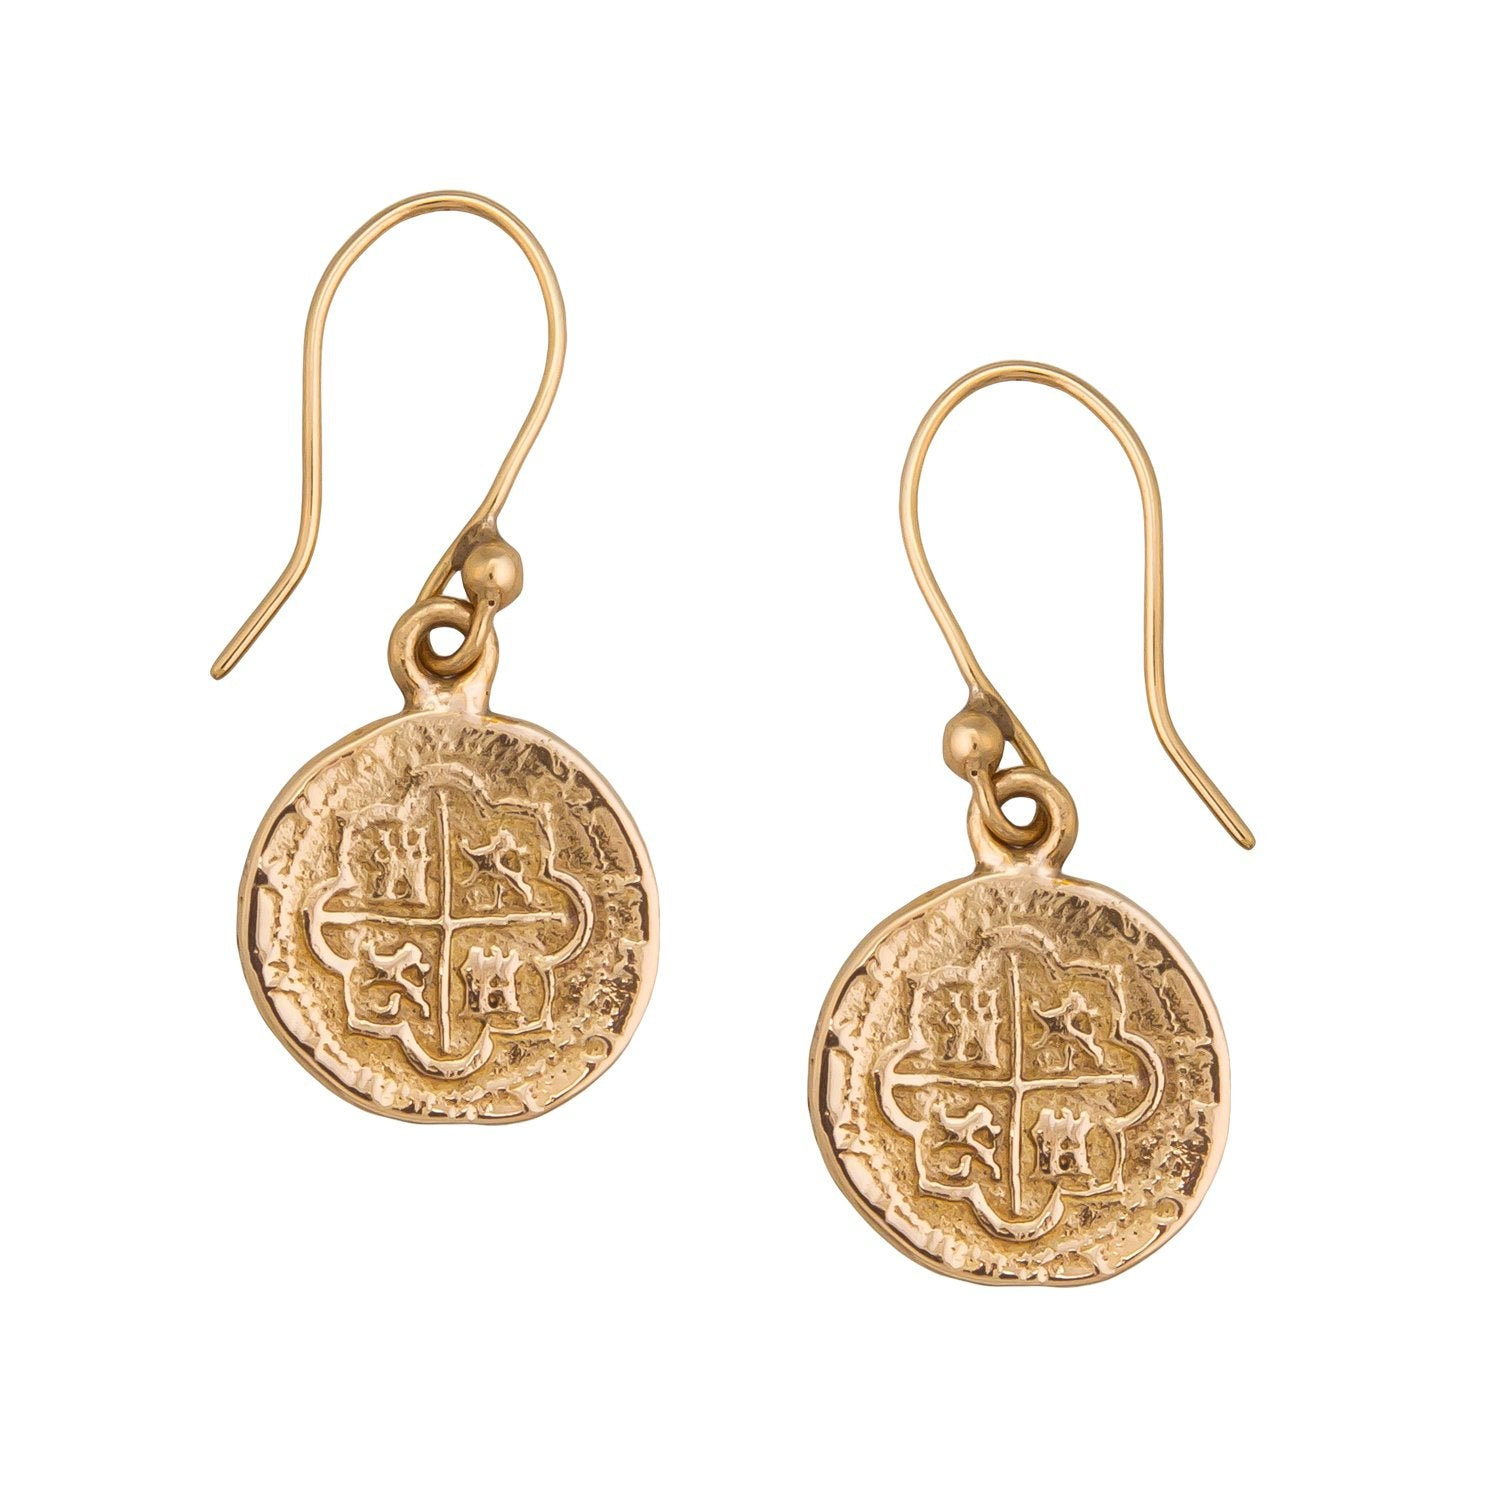 Alchemia Replica Spanish Coin Earrings